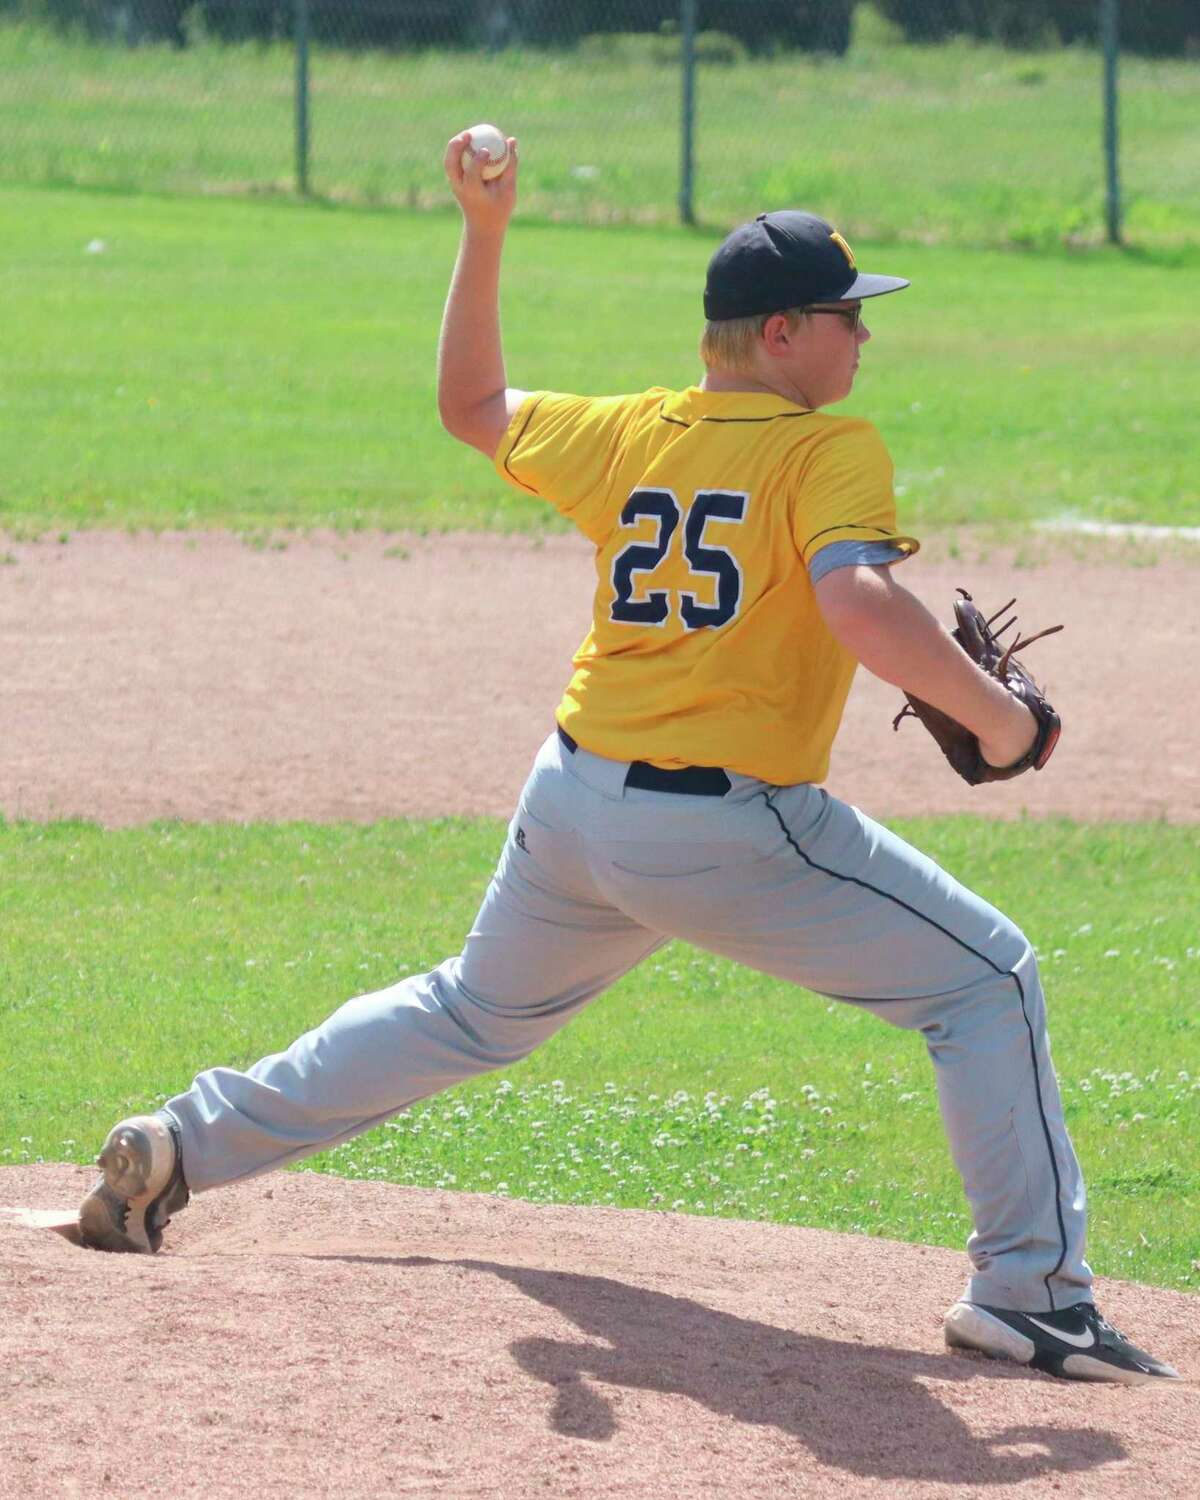 Donavyn Kirchinger matured as a pitcher in 2021 to make the all-conference and all-district teams. (News Advocate file photo)